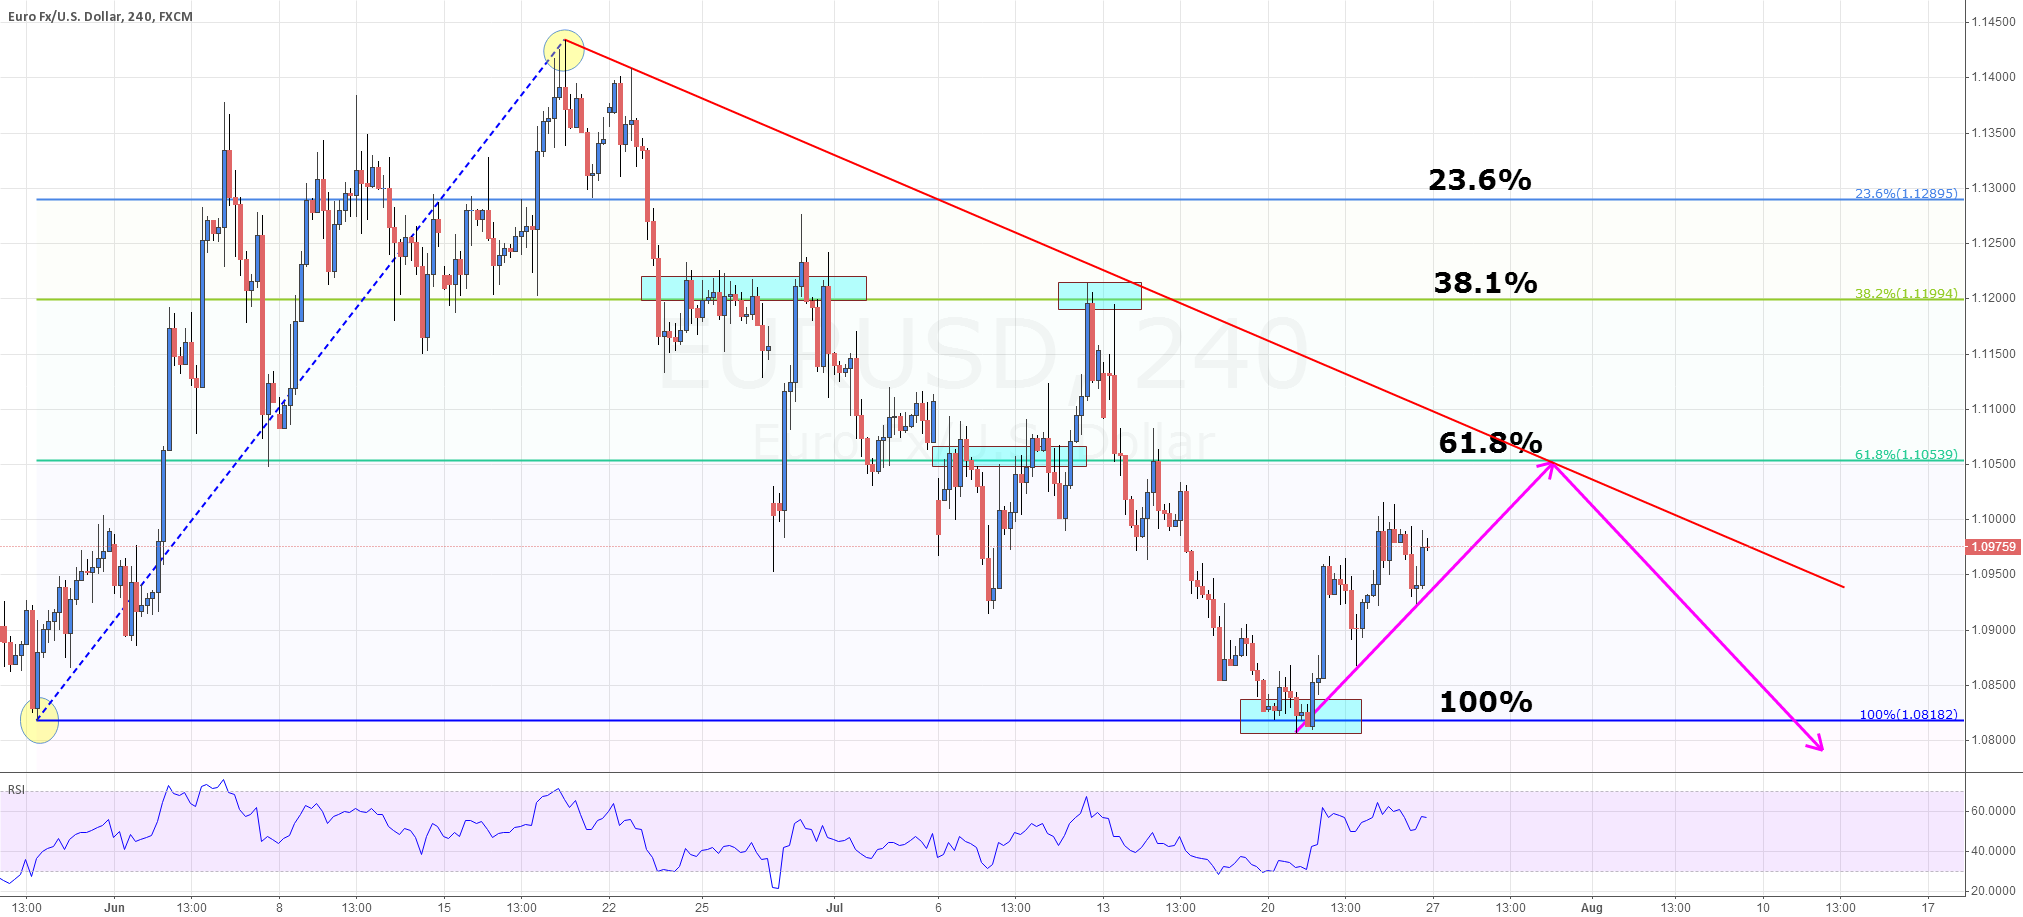 EUR/USD is gonna test 61.8% Retracement next week.